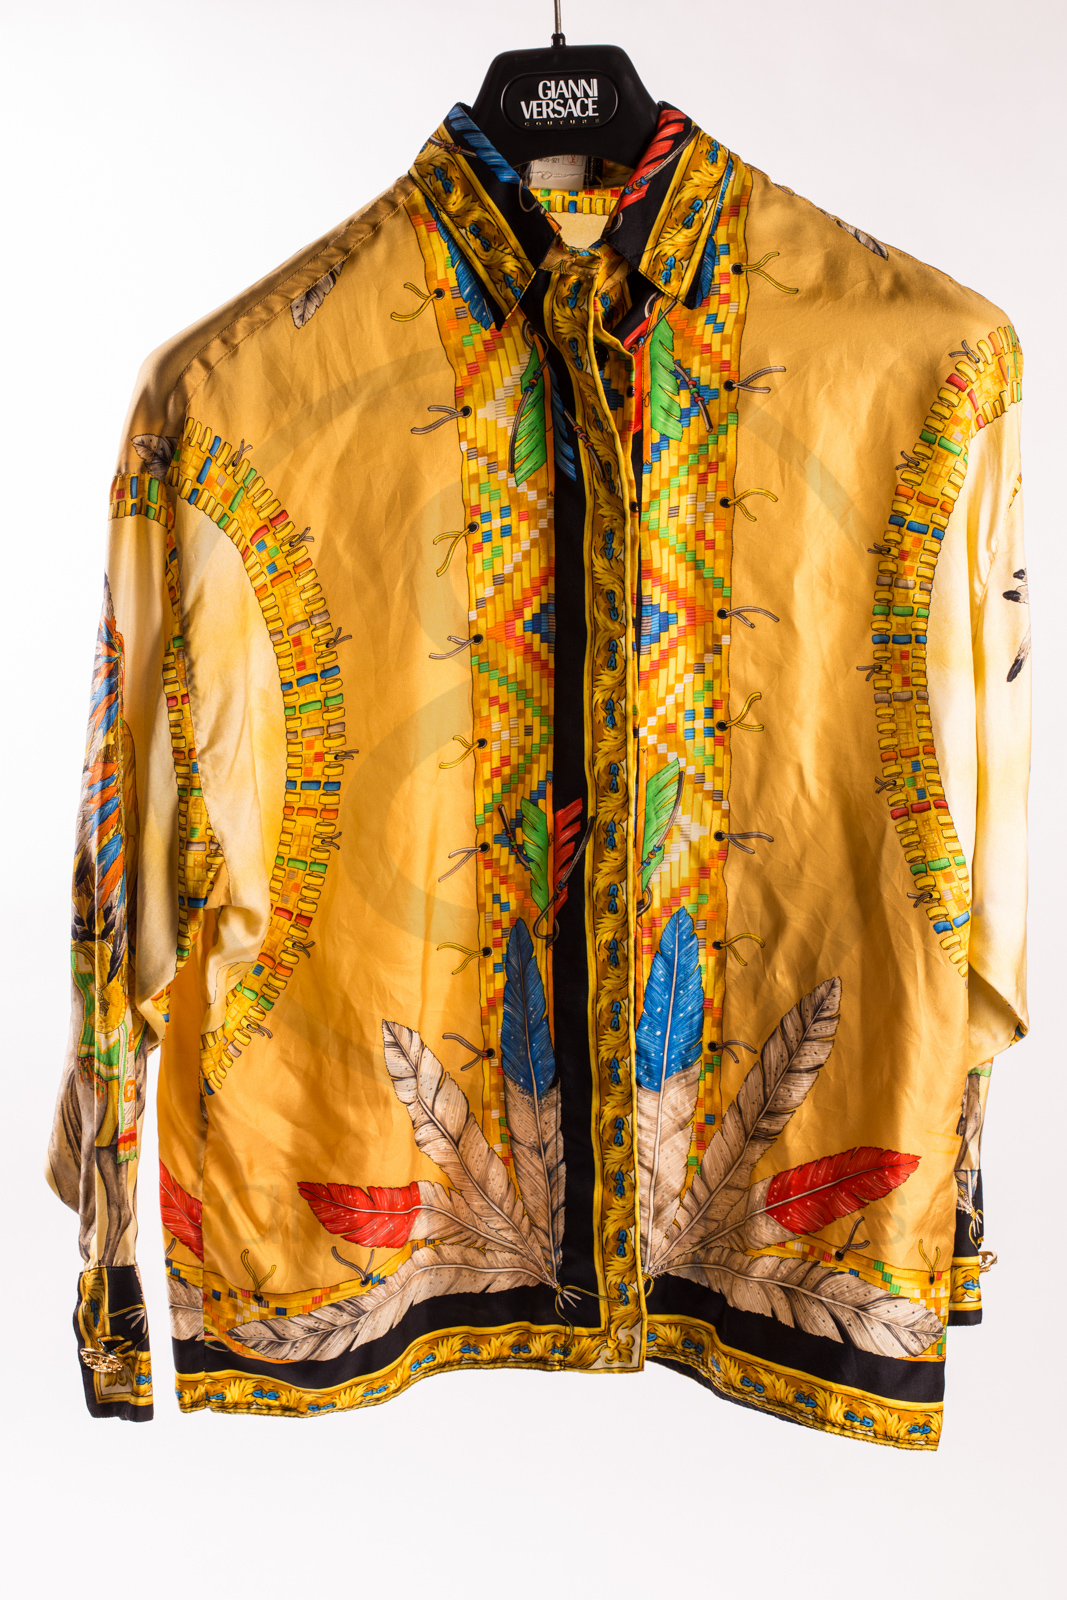 Gianni Versace Silk Shirt Indian Sammy Amp Nino S Store